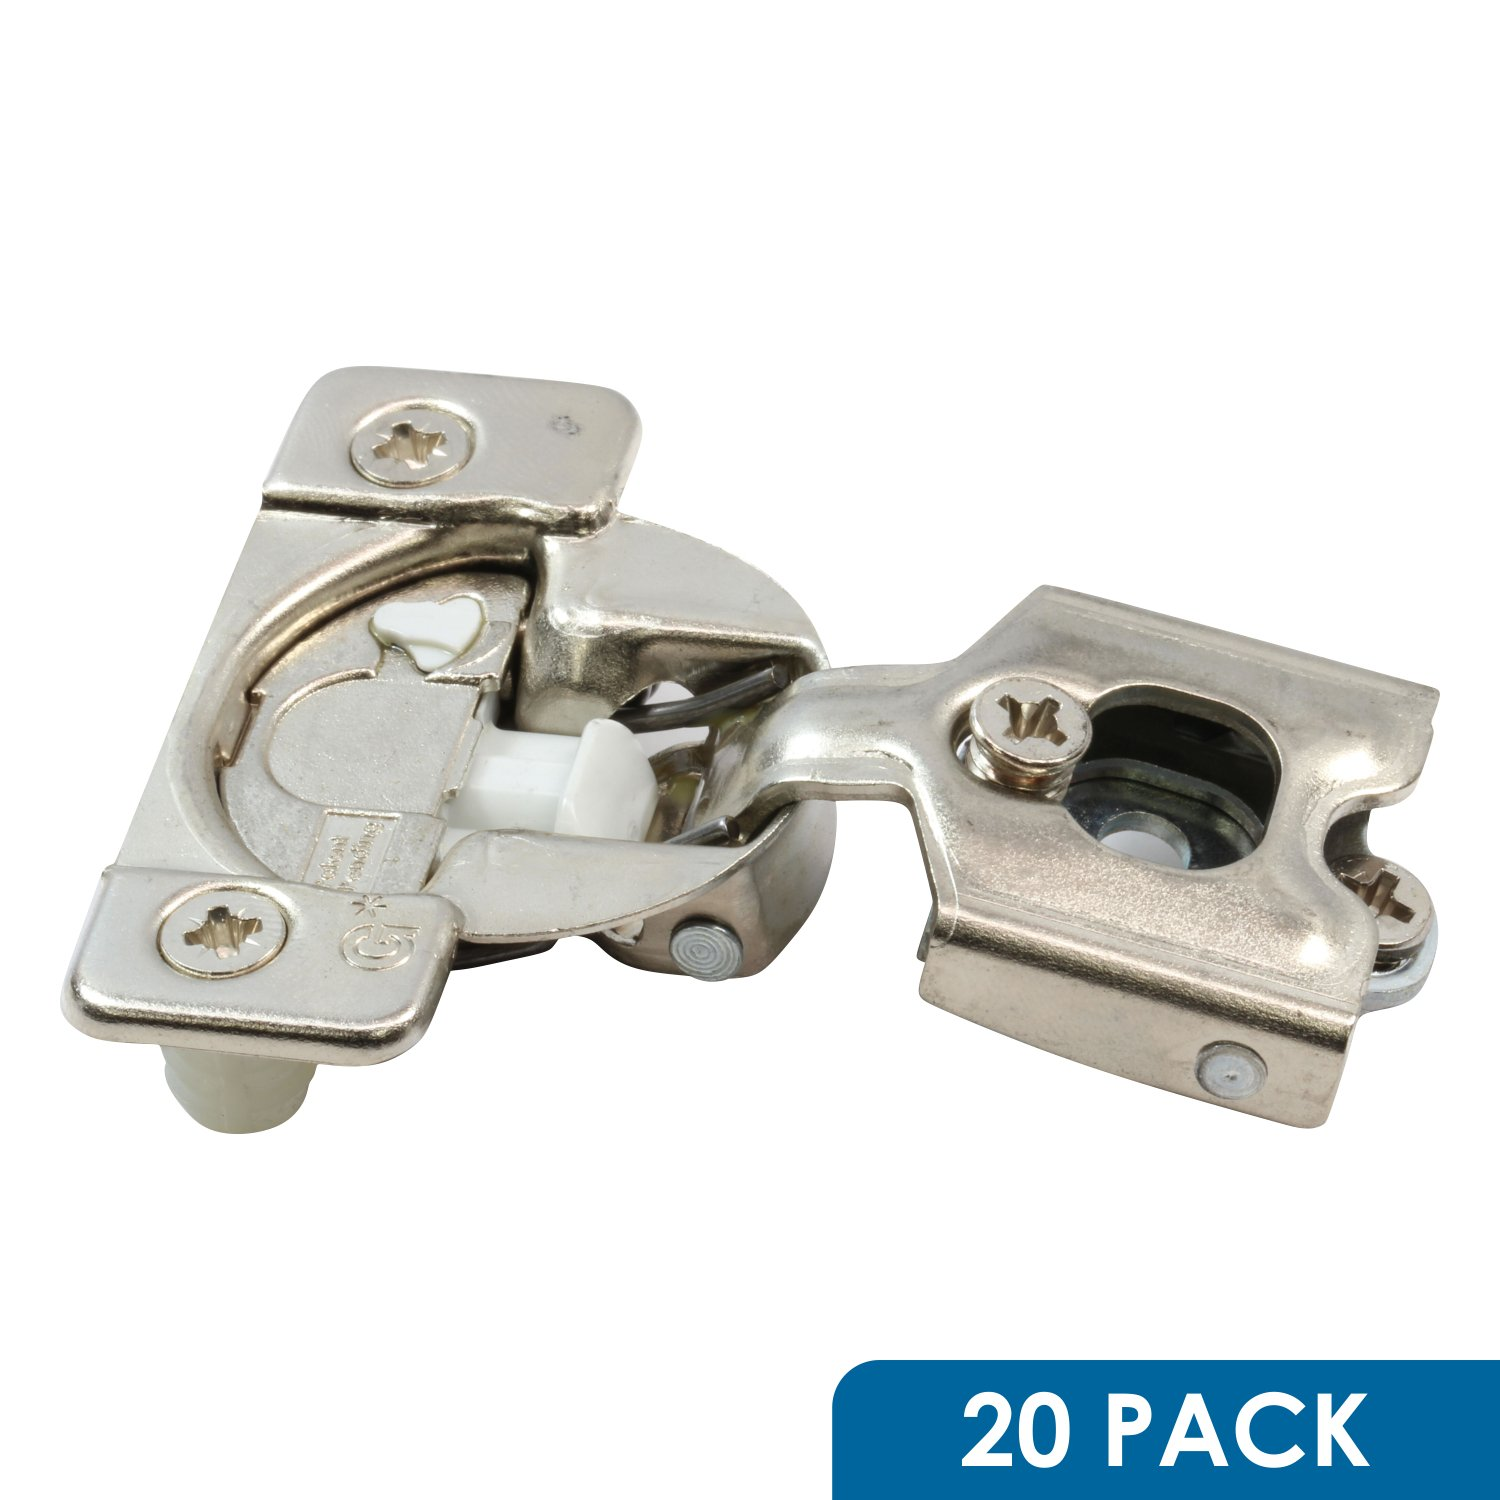 20 Pack Rok Hardware Grass TEC 108 Degree 1/2'' Overlay Soft Close Press in Compact Wrap Mount Cabinet Hinge 02824A-15 3-Way Adjustment 42mm Screw Hole Pattern